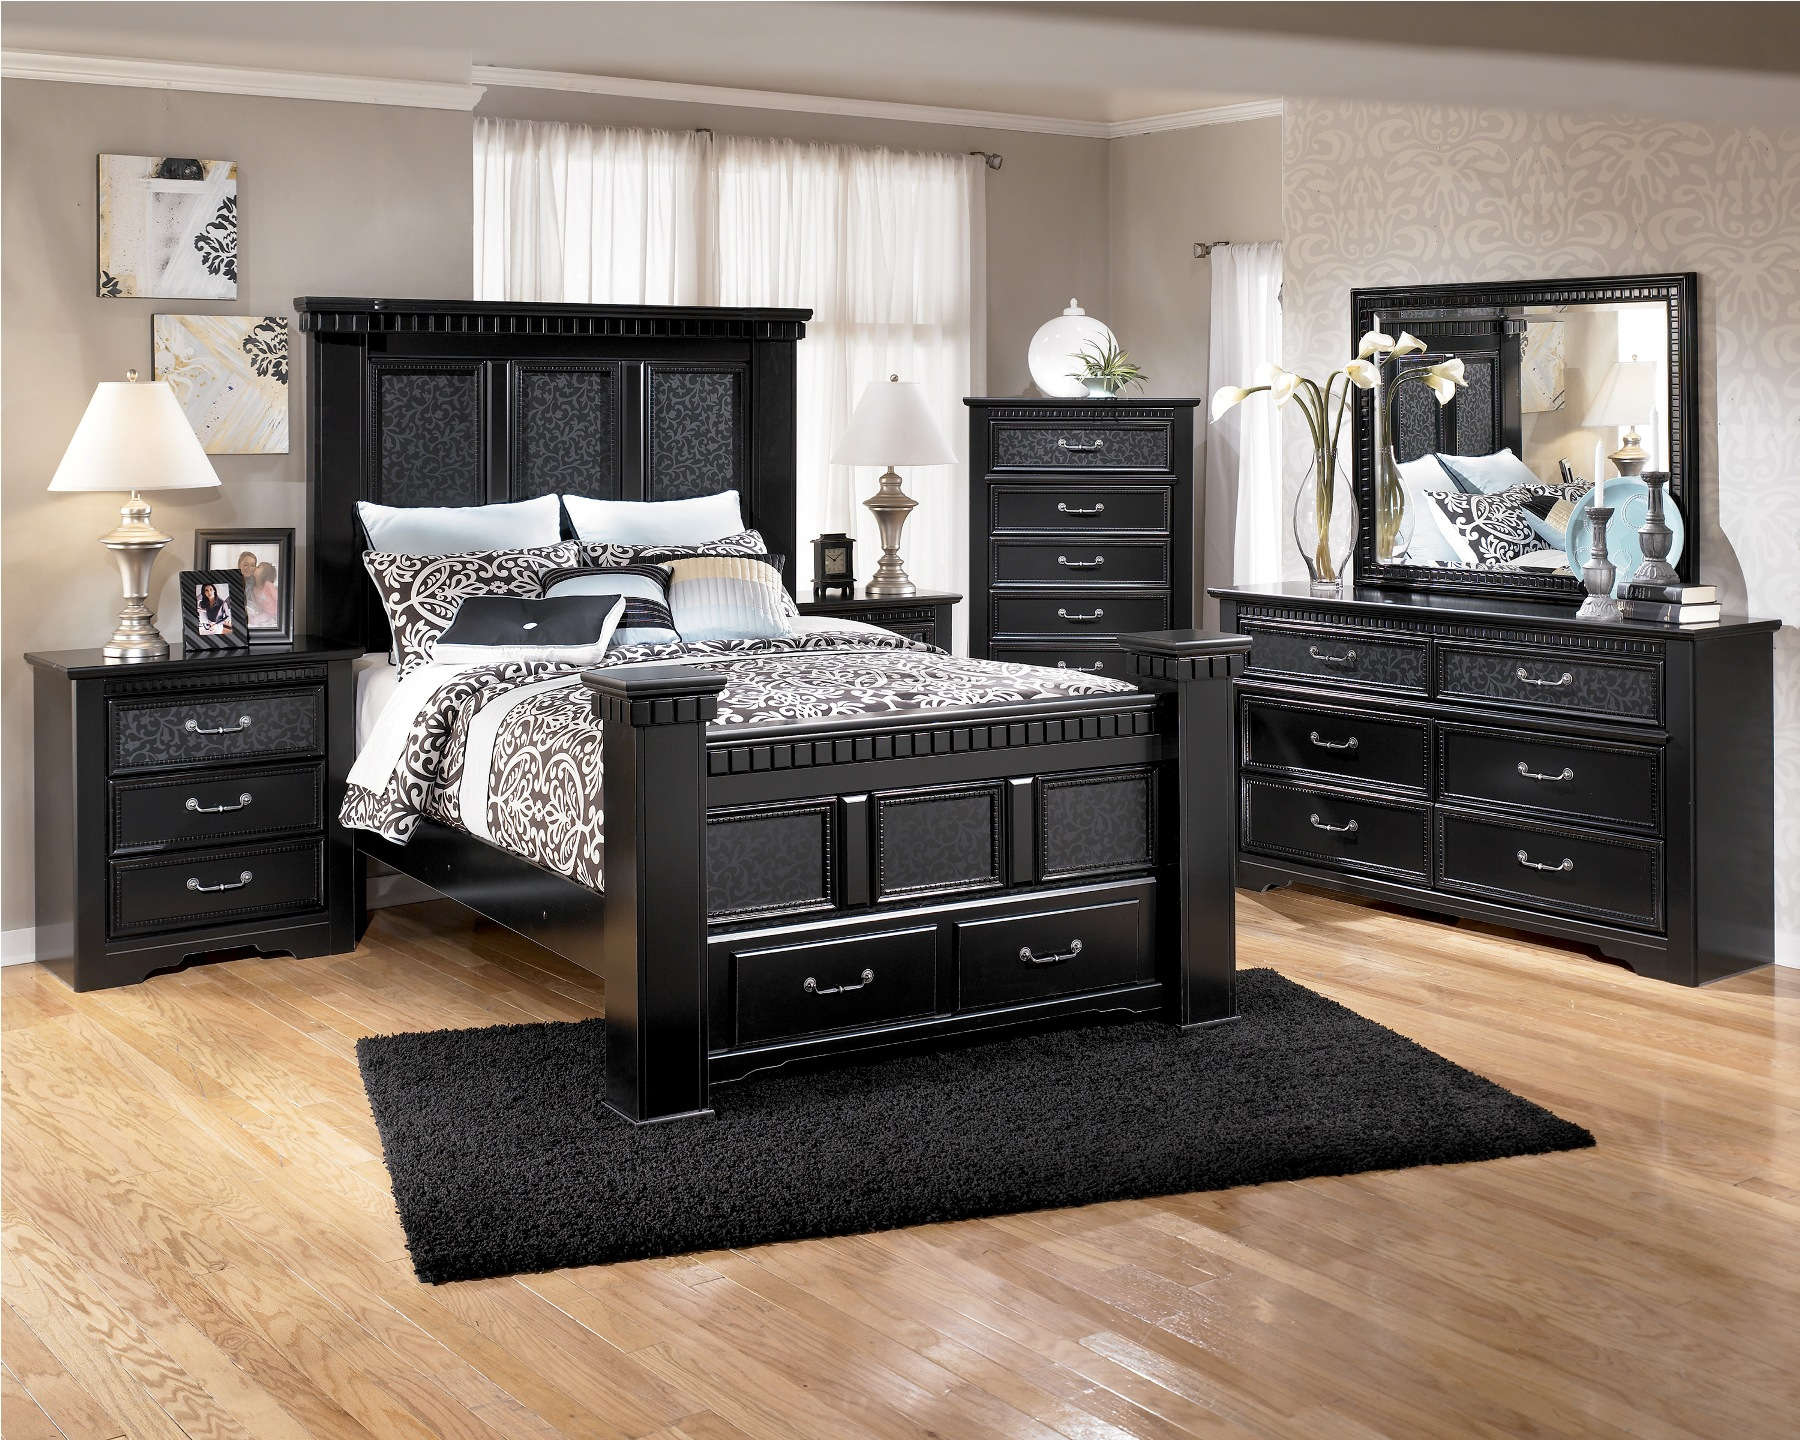 25 bedroom furniture design ideas. Black Bedroom Furniture Sets. Home Design Ideas